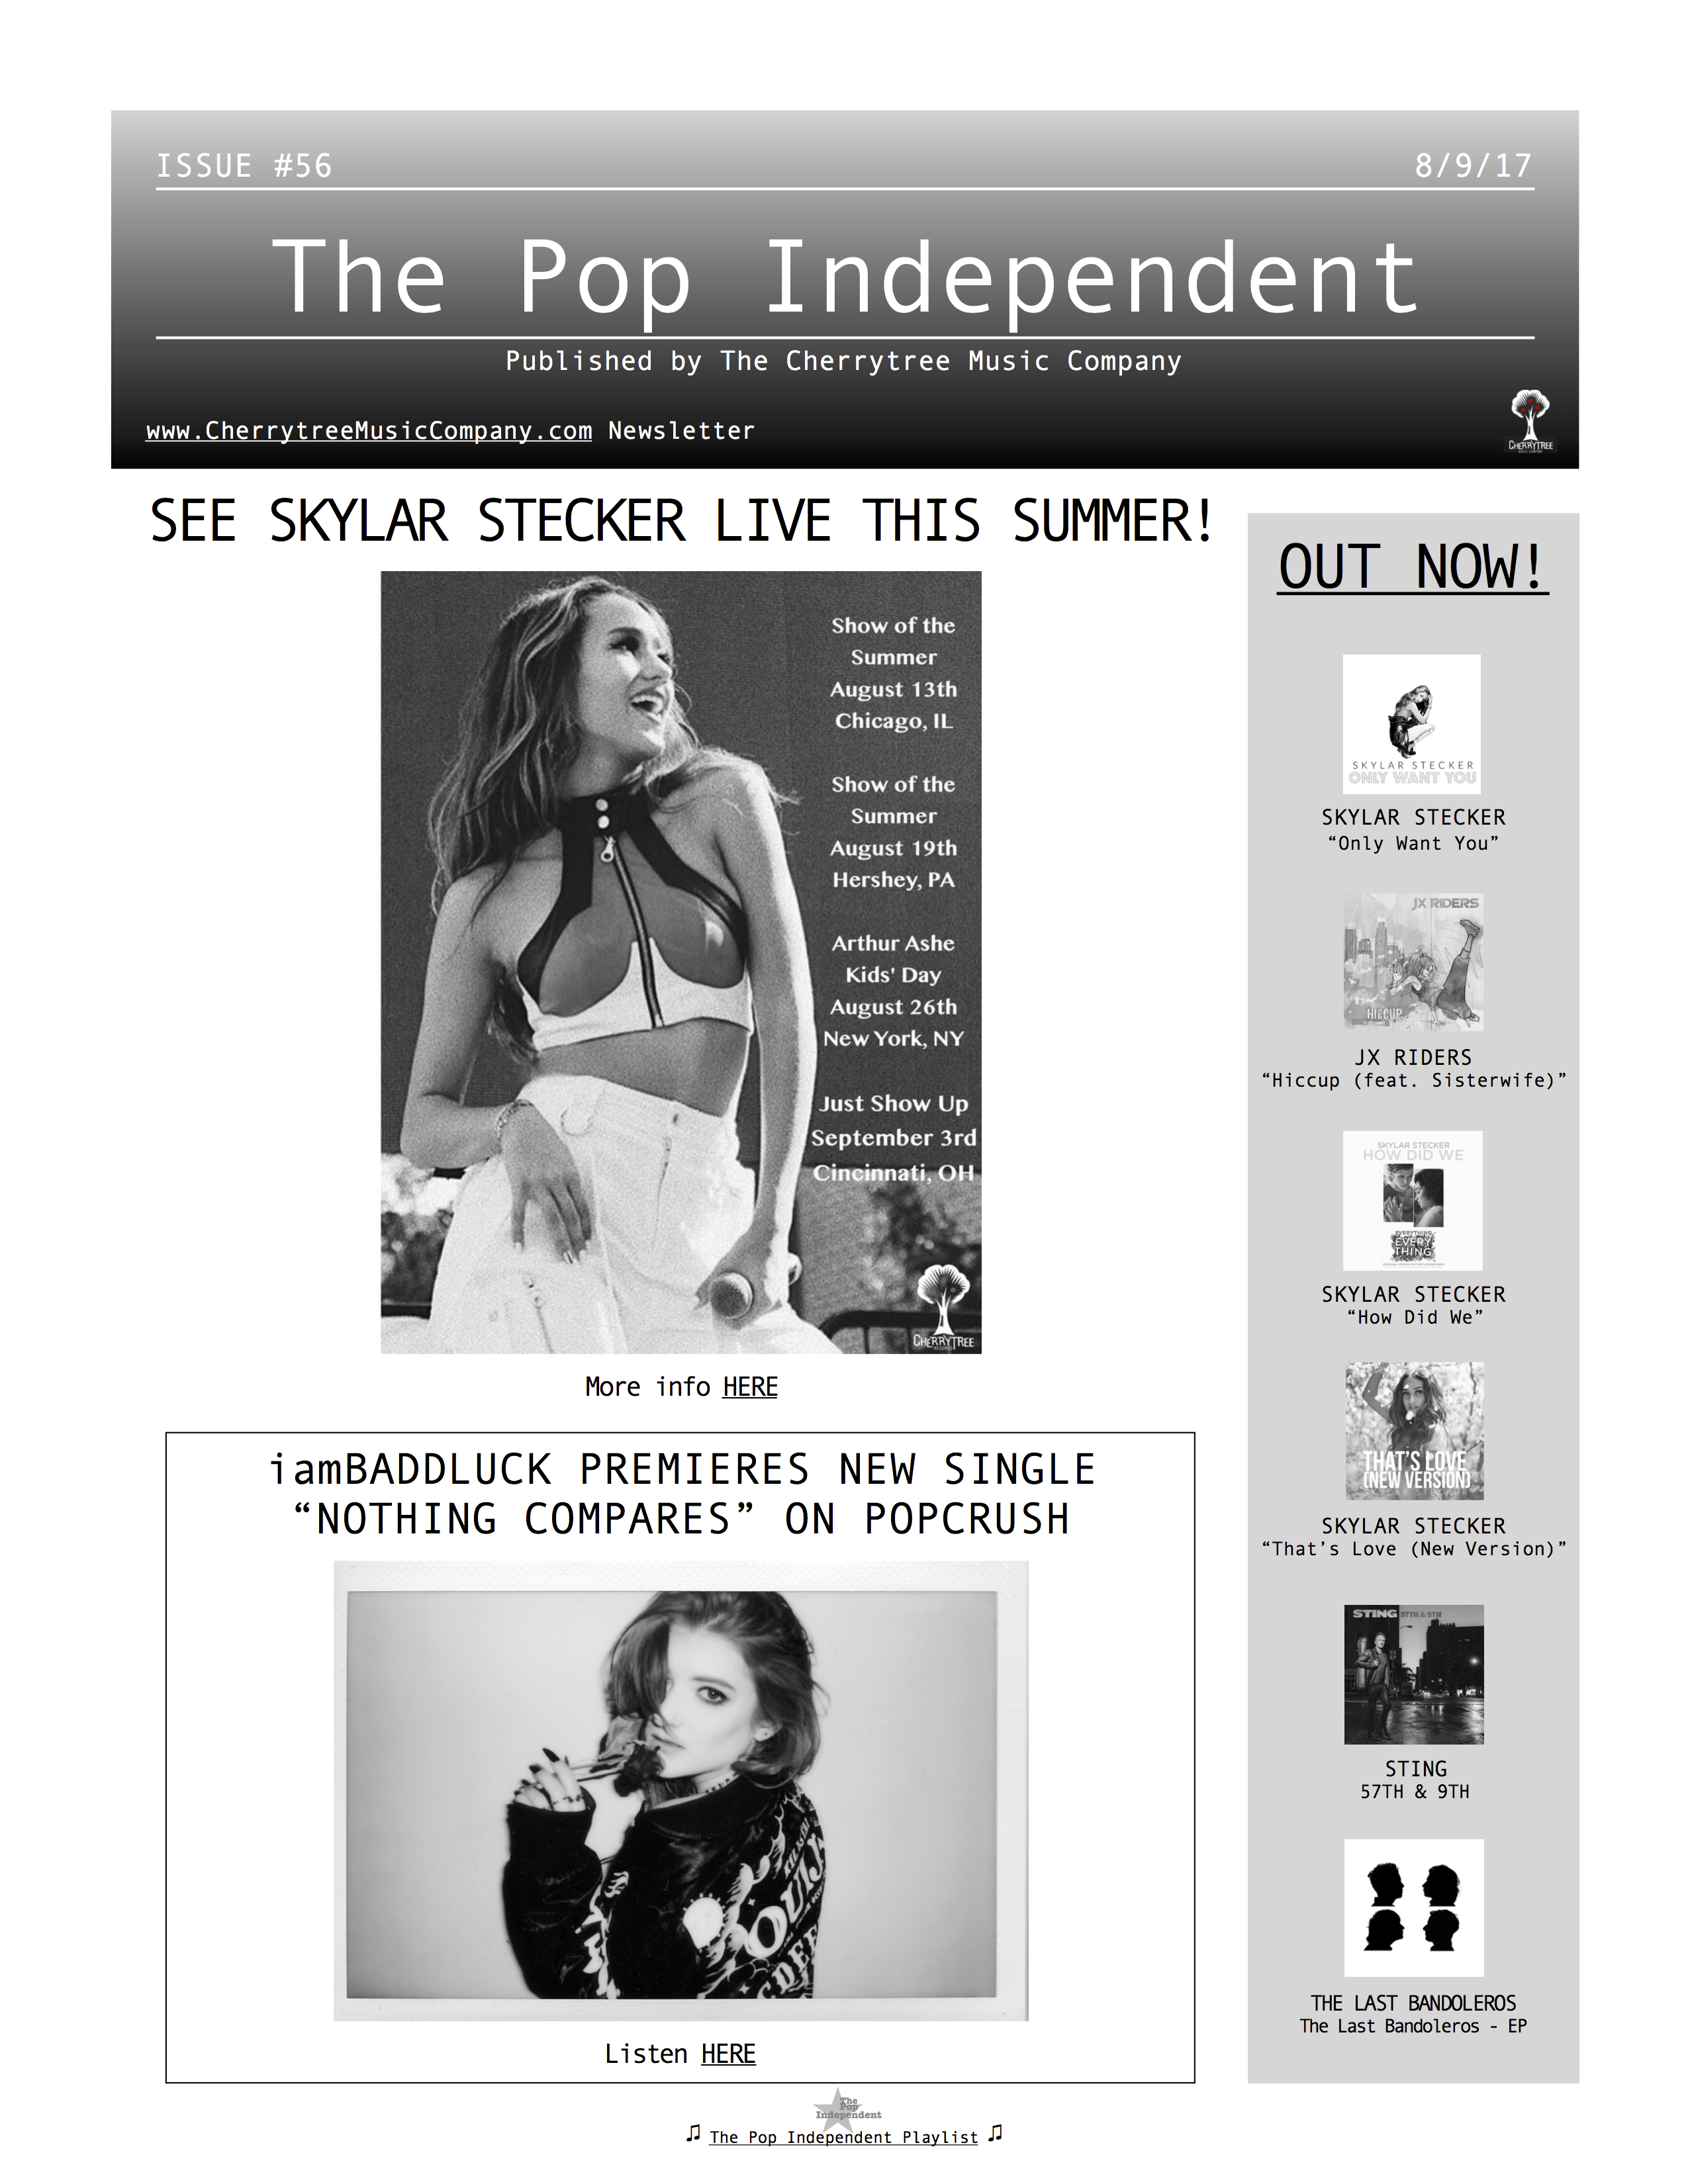 The Pop Independent, issue 55